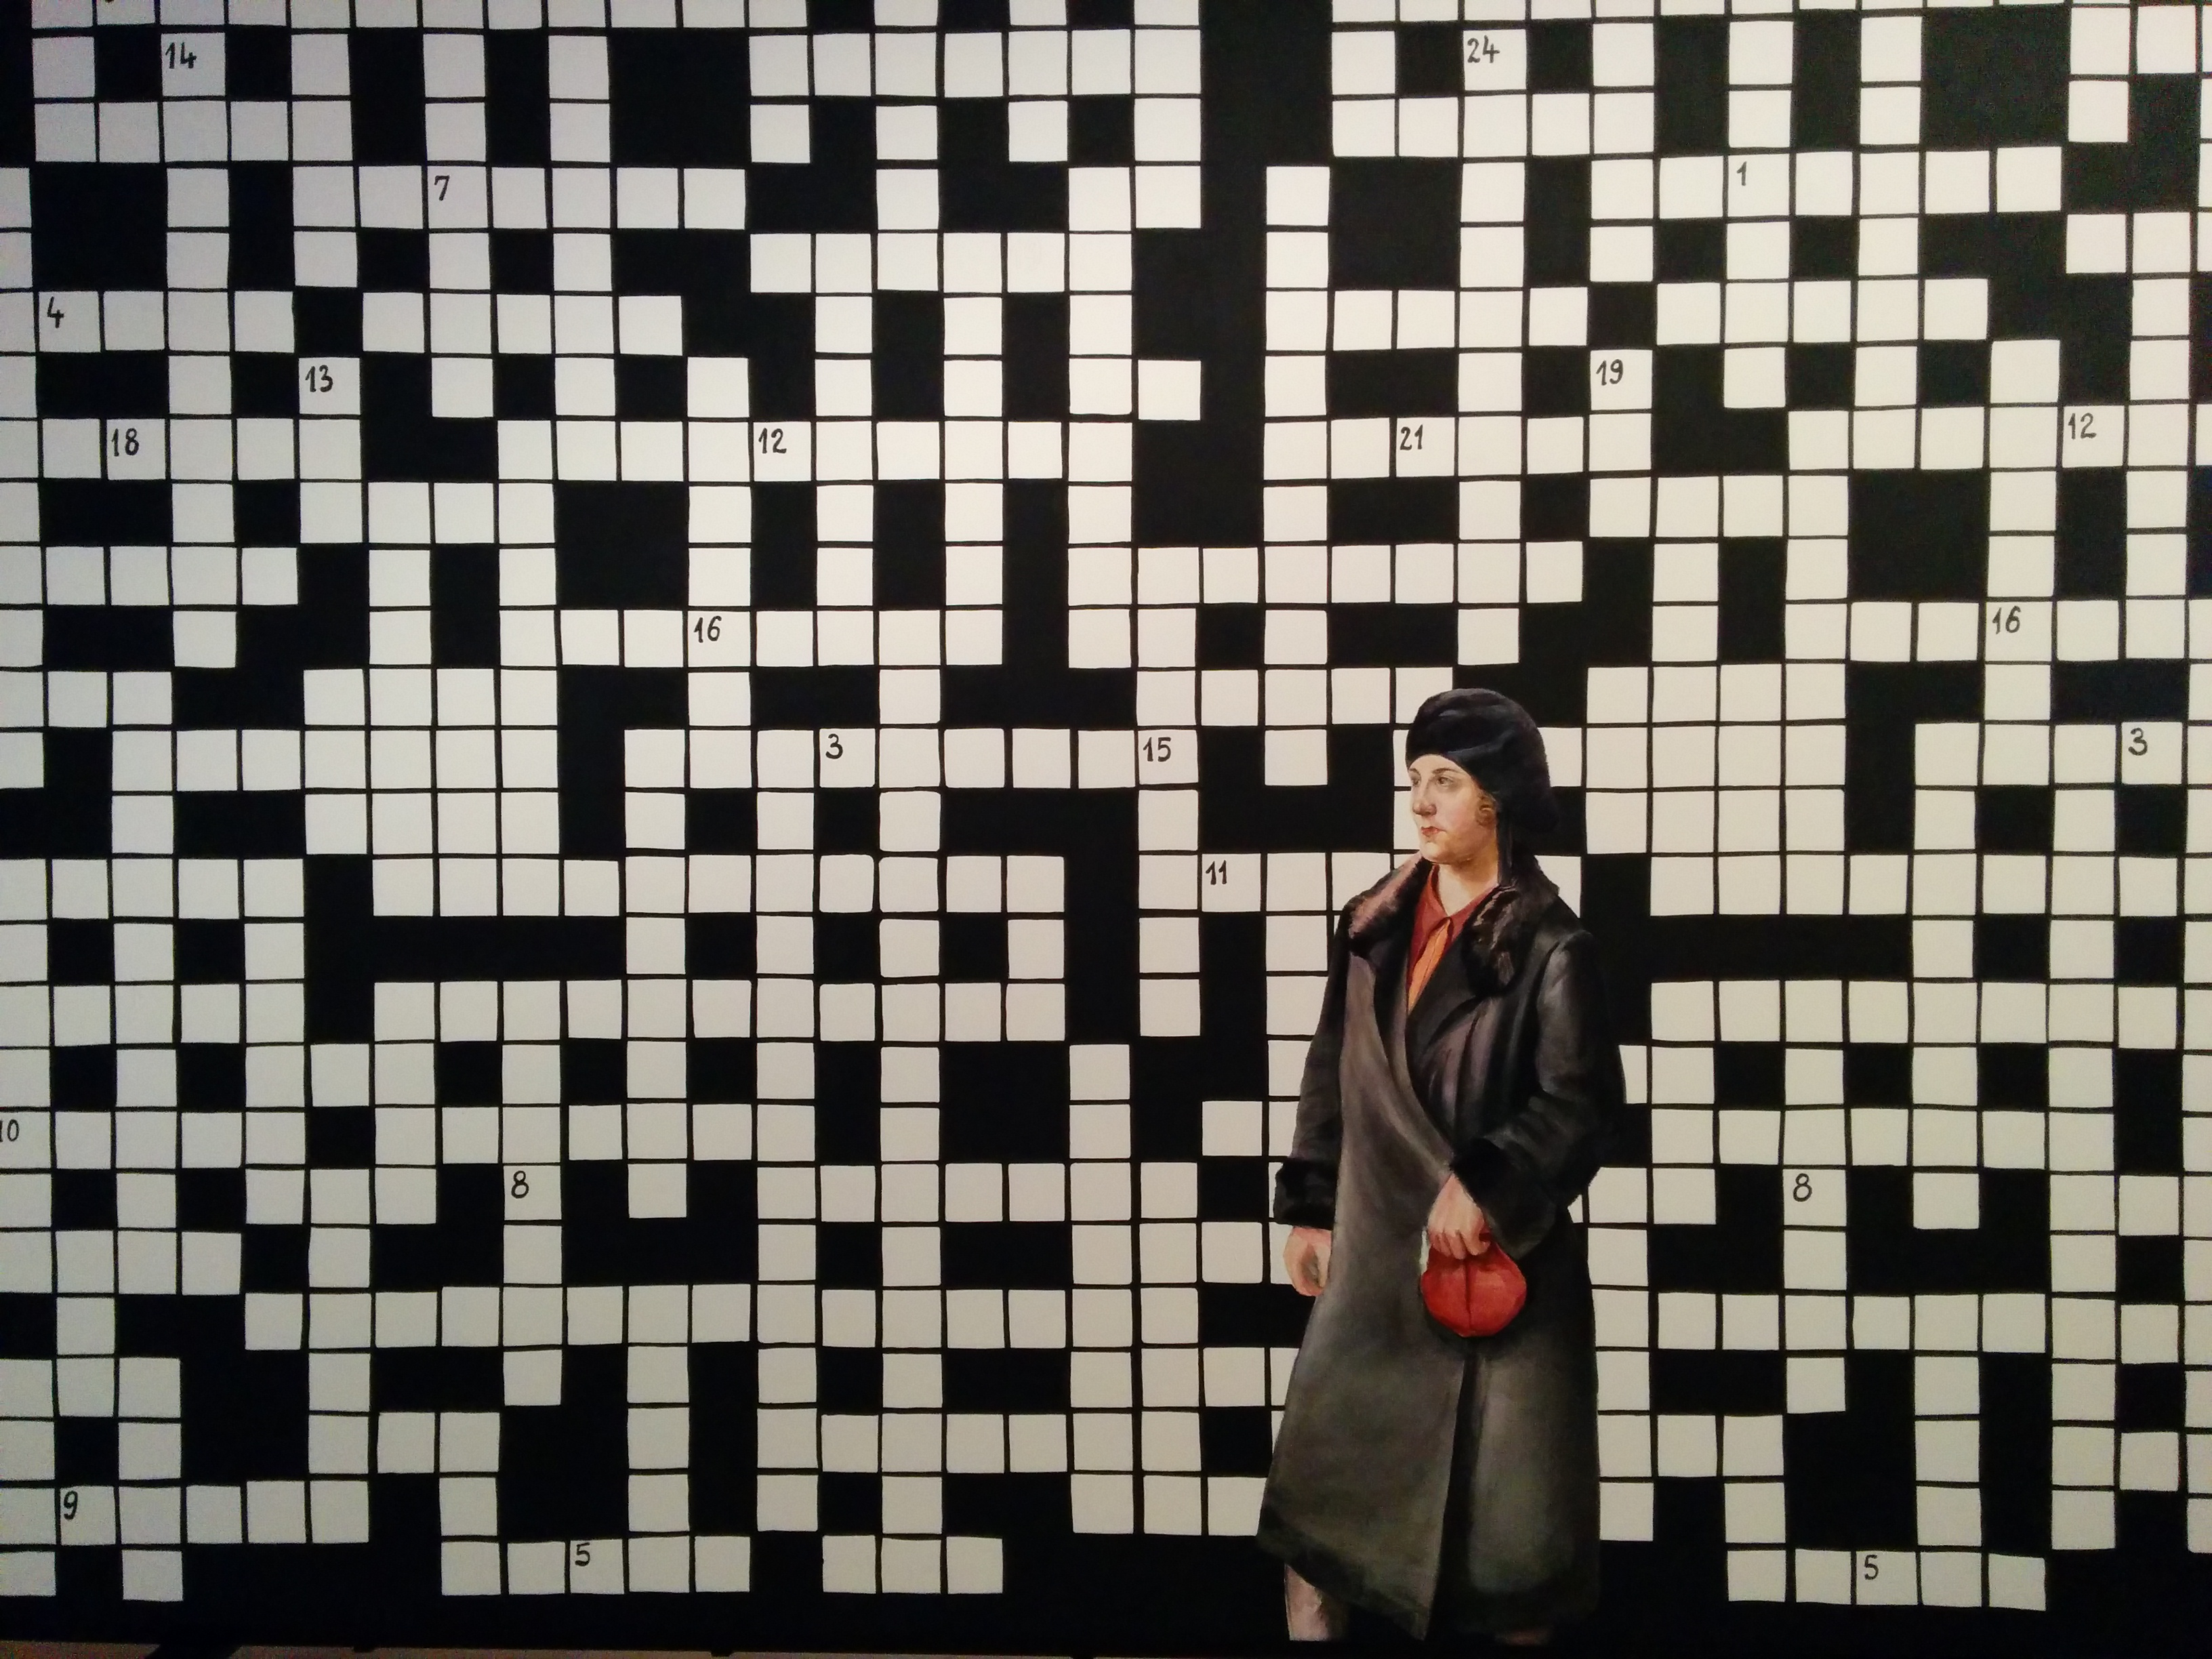 File:Crossword puzzle with lady in black coat.jpg - Wikimedia Commons